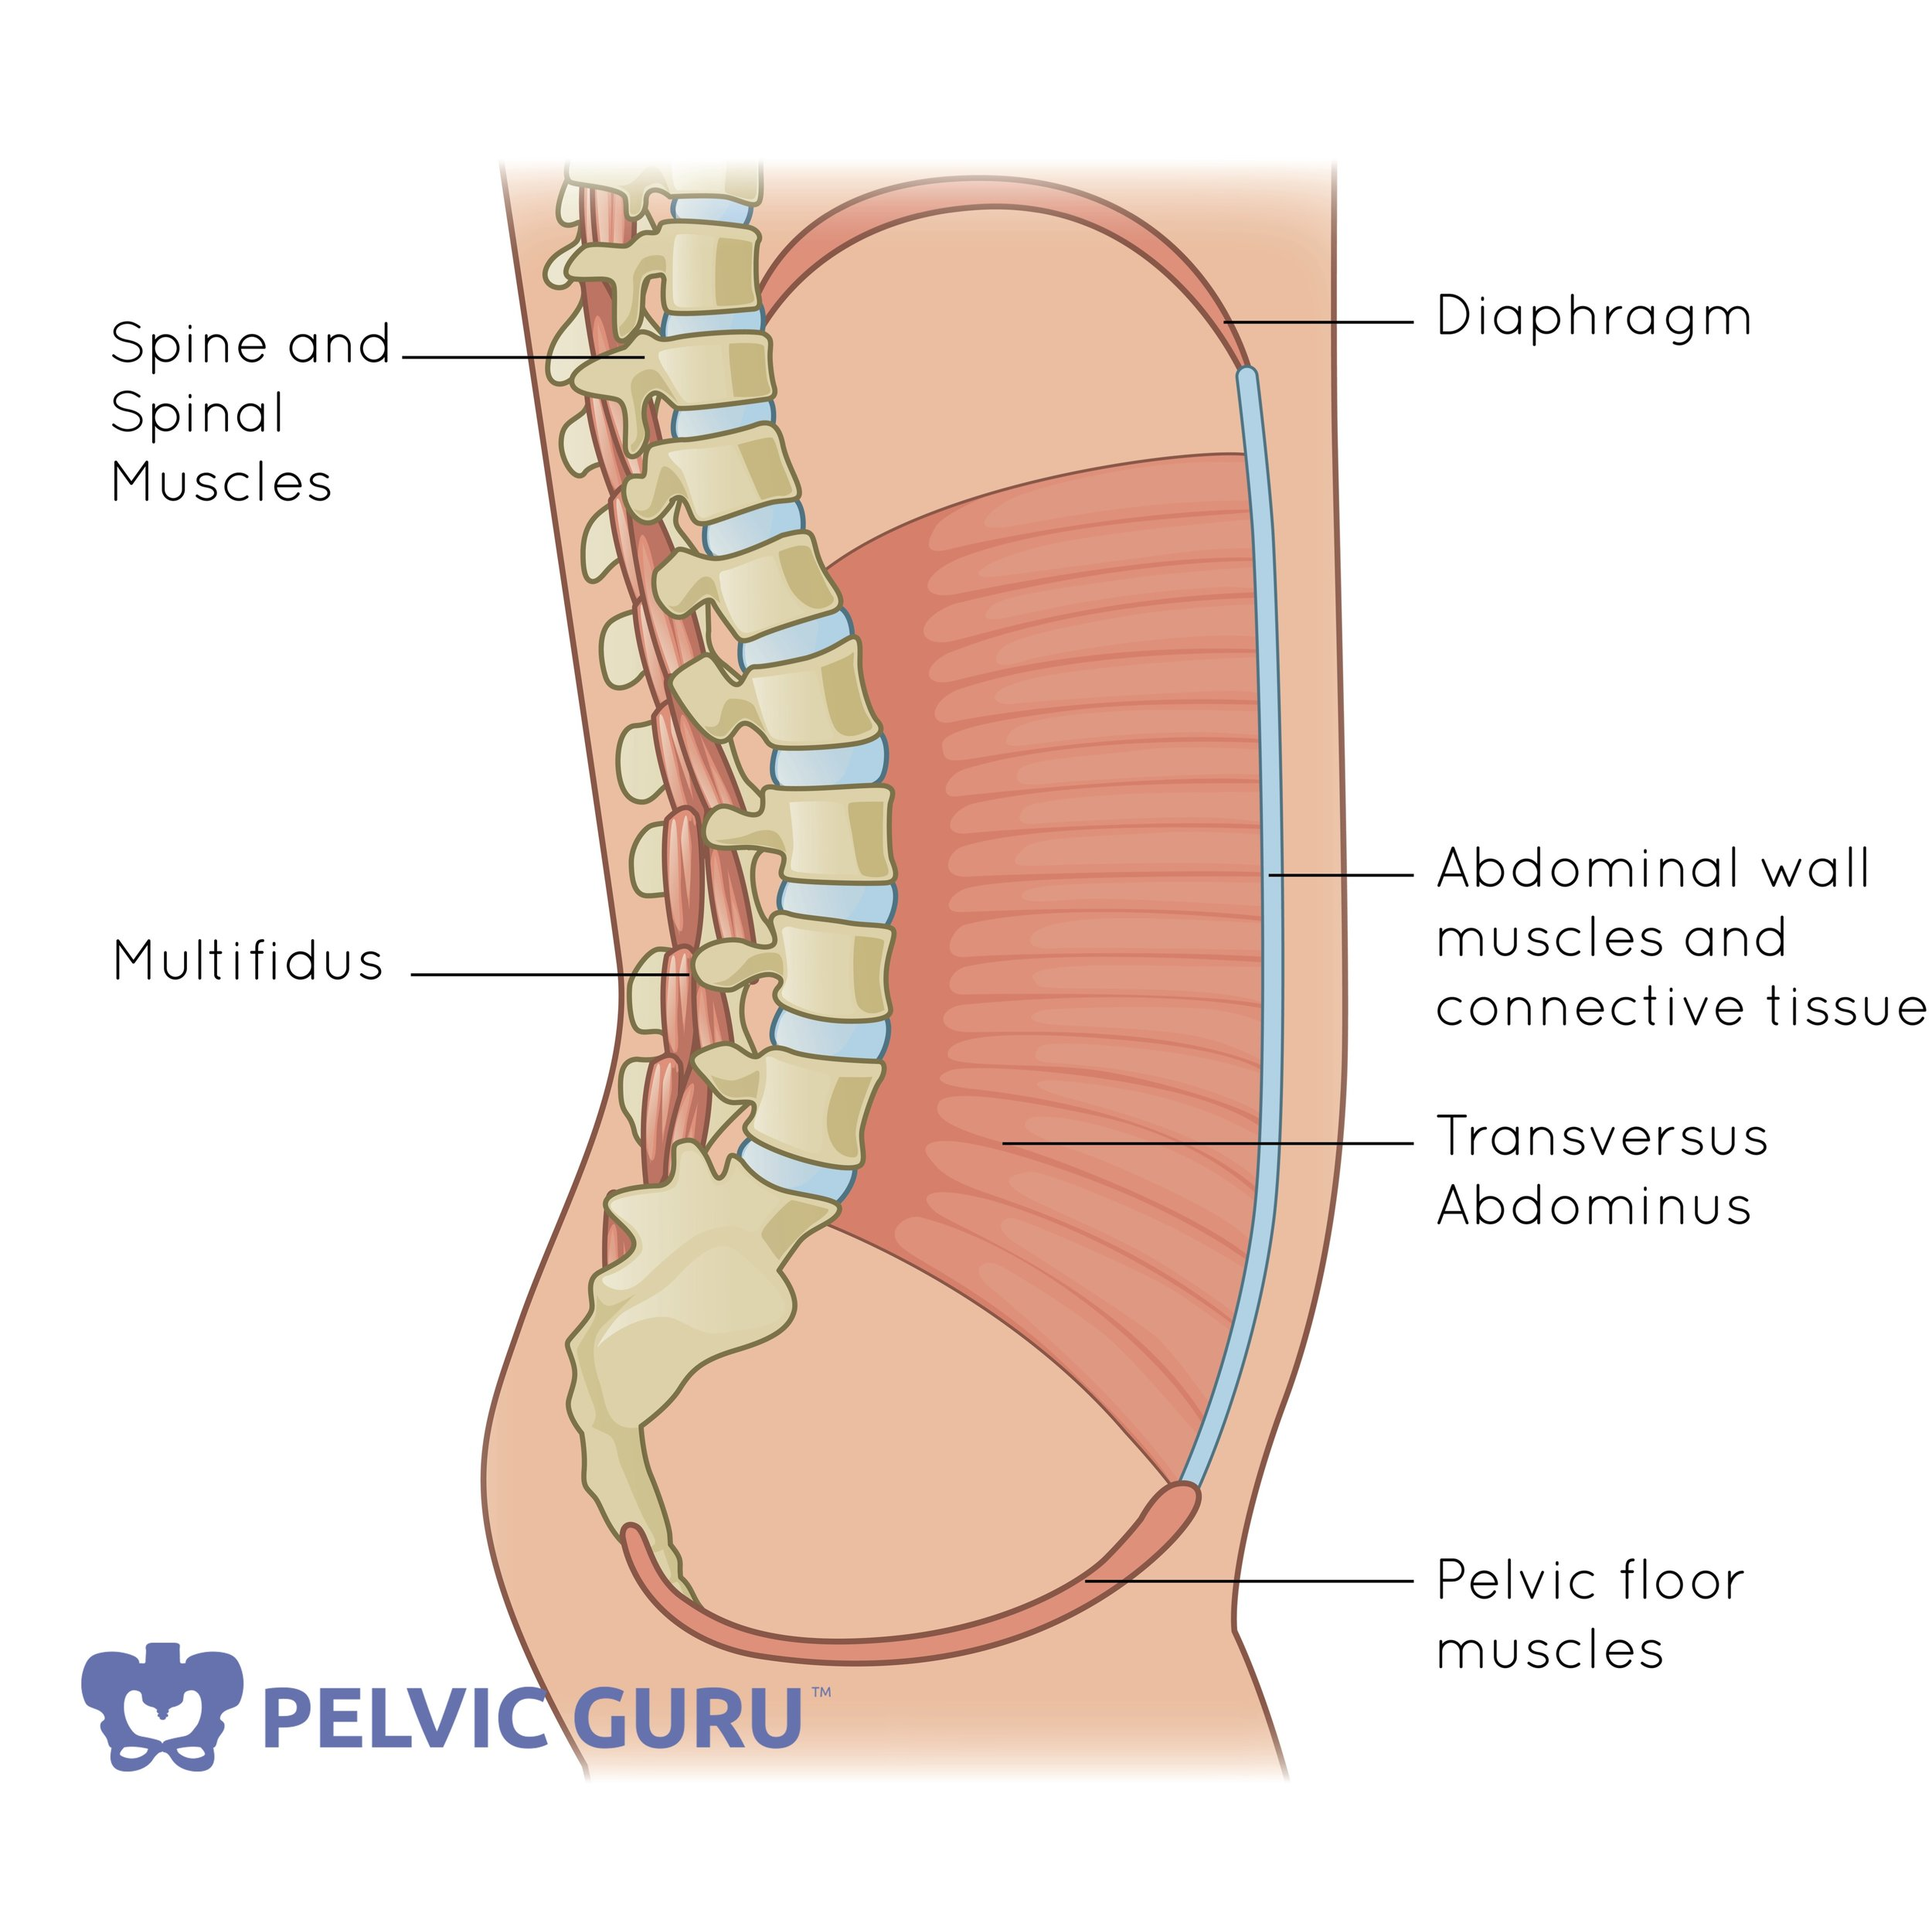 Pelvic Guru owns the rights to this image.